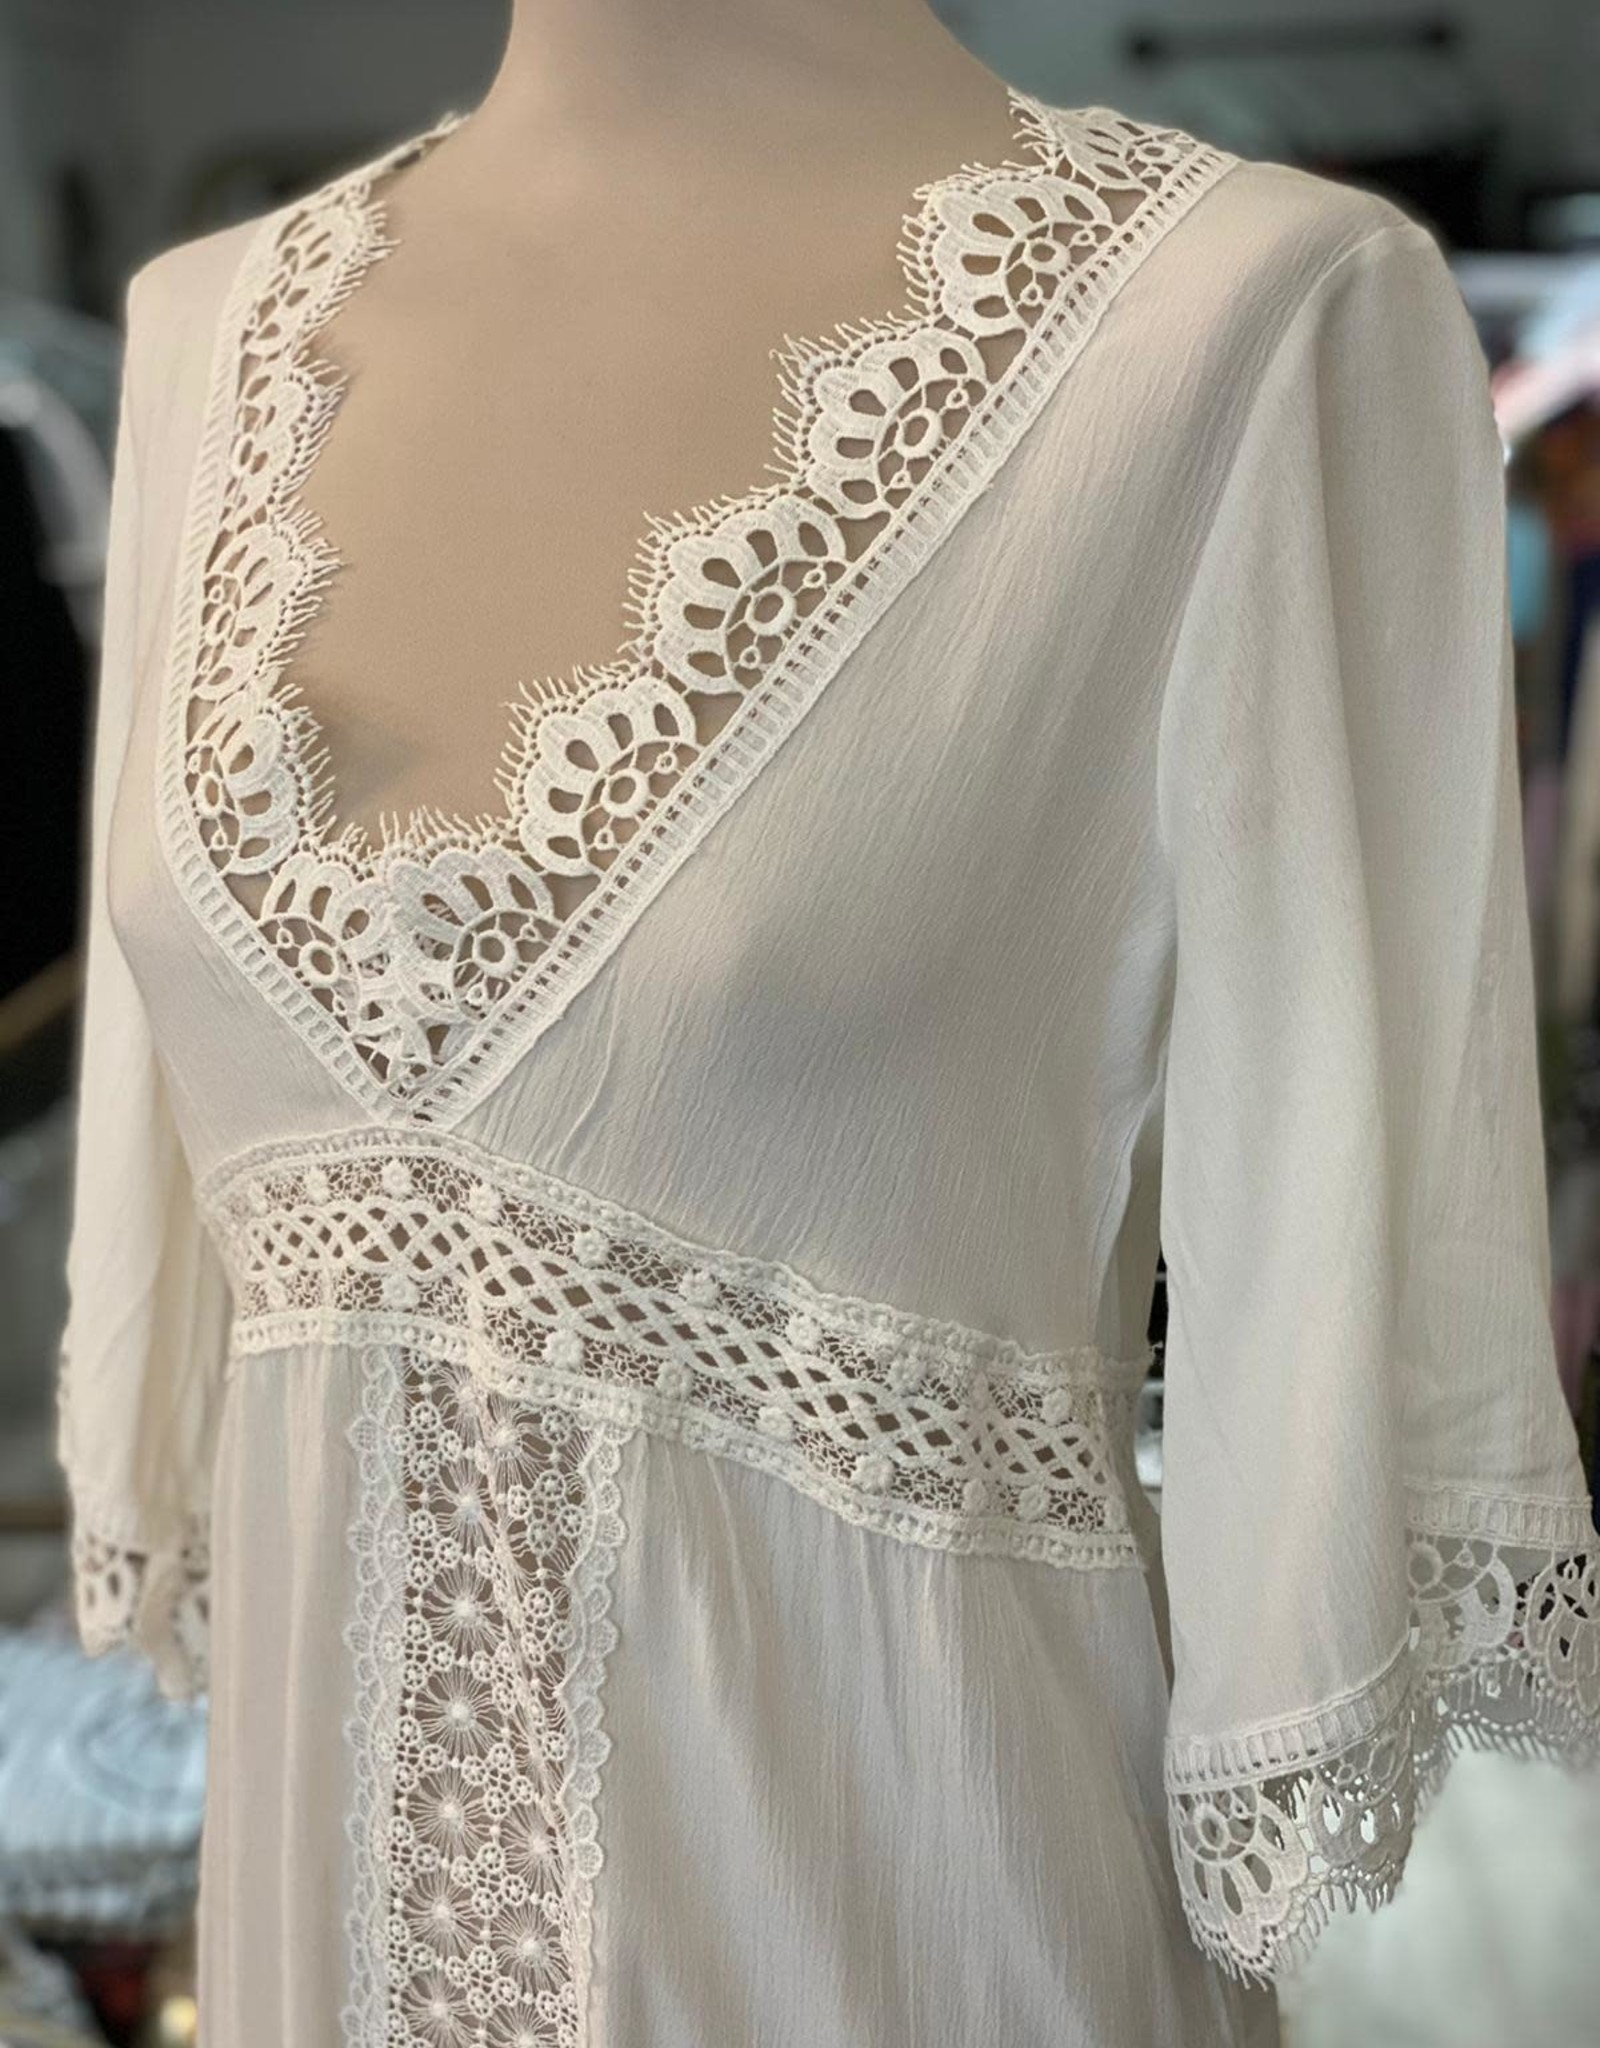 THE NATURAL PEOPLE LUXURY LINEN  BEACH WEAR TNP 033 TUNIC  DRESS WITH LACE